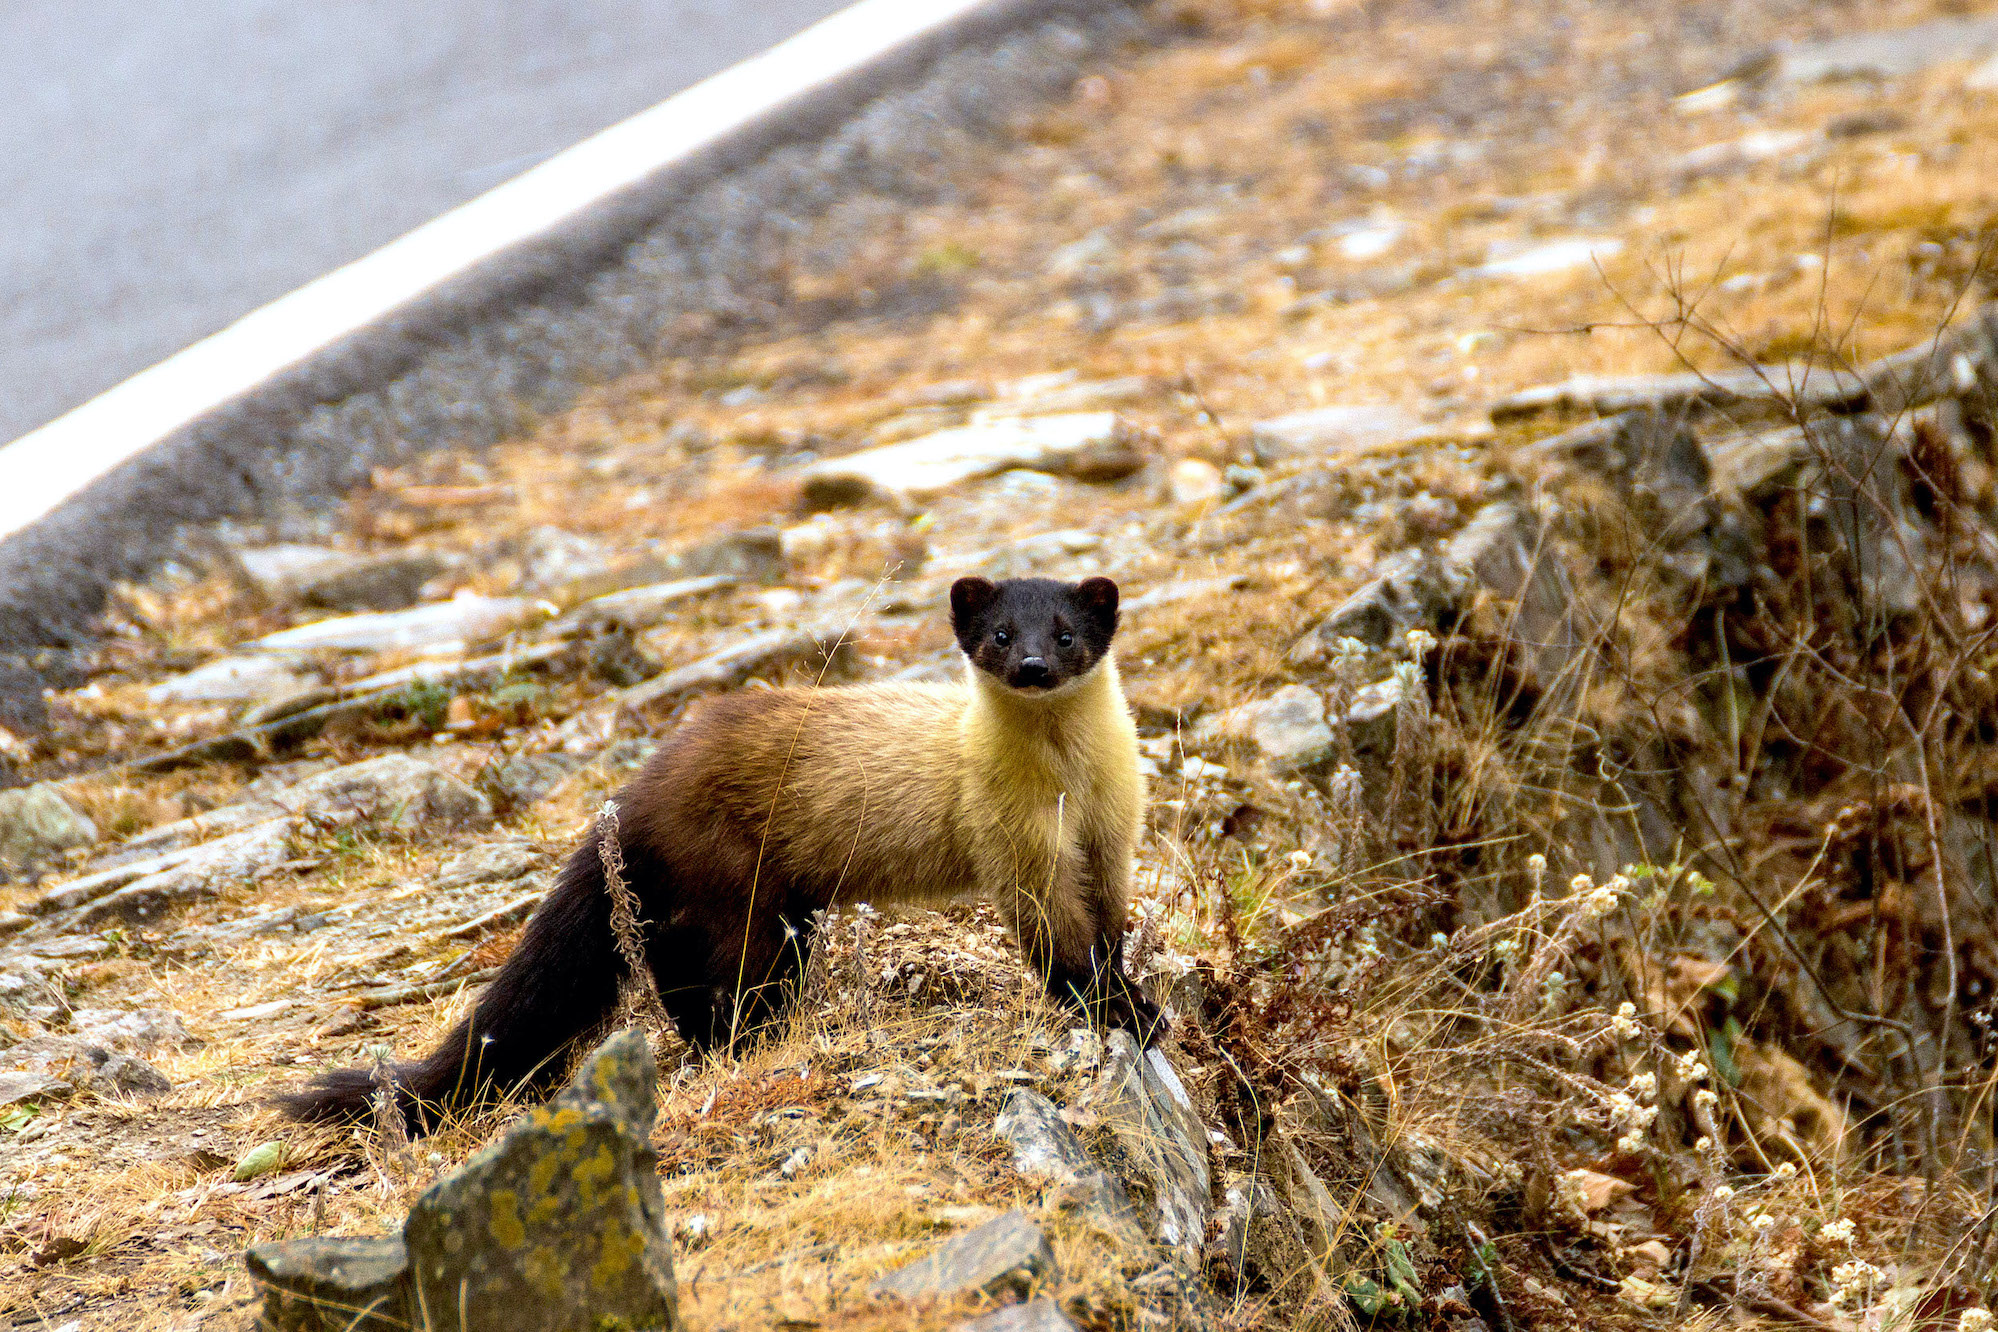 Yellow-throated marten can be quite bold. They are rather unafraid of humans and until one gets too close (as in my case), they are slow to flee. Behind the cute and furry appearance of the yellow-throated marten lurks a fearless and feisty predator that is at the top of the food chain. Photo: Tarun Menon